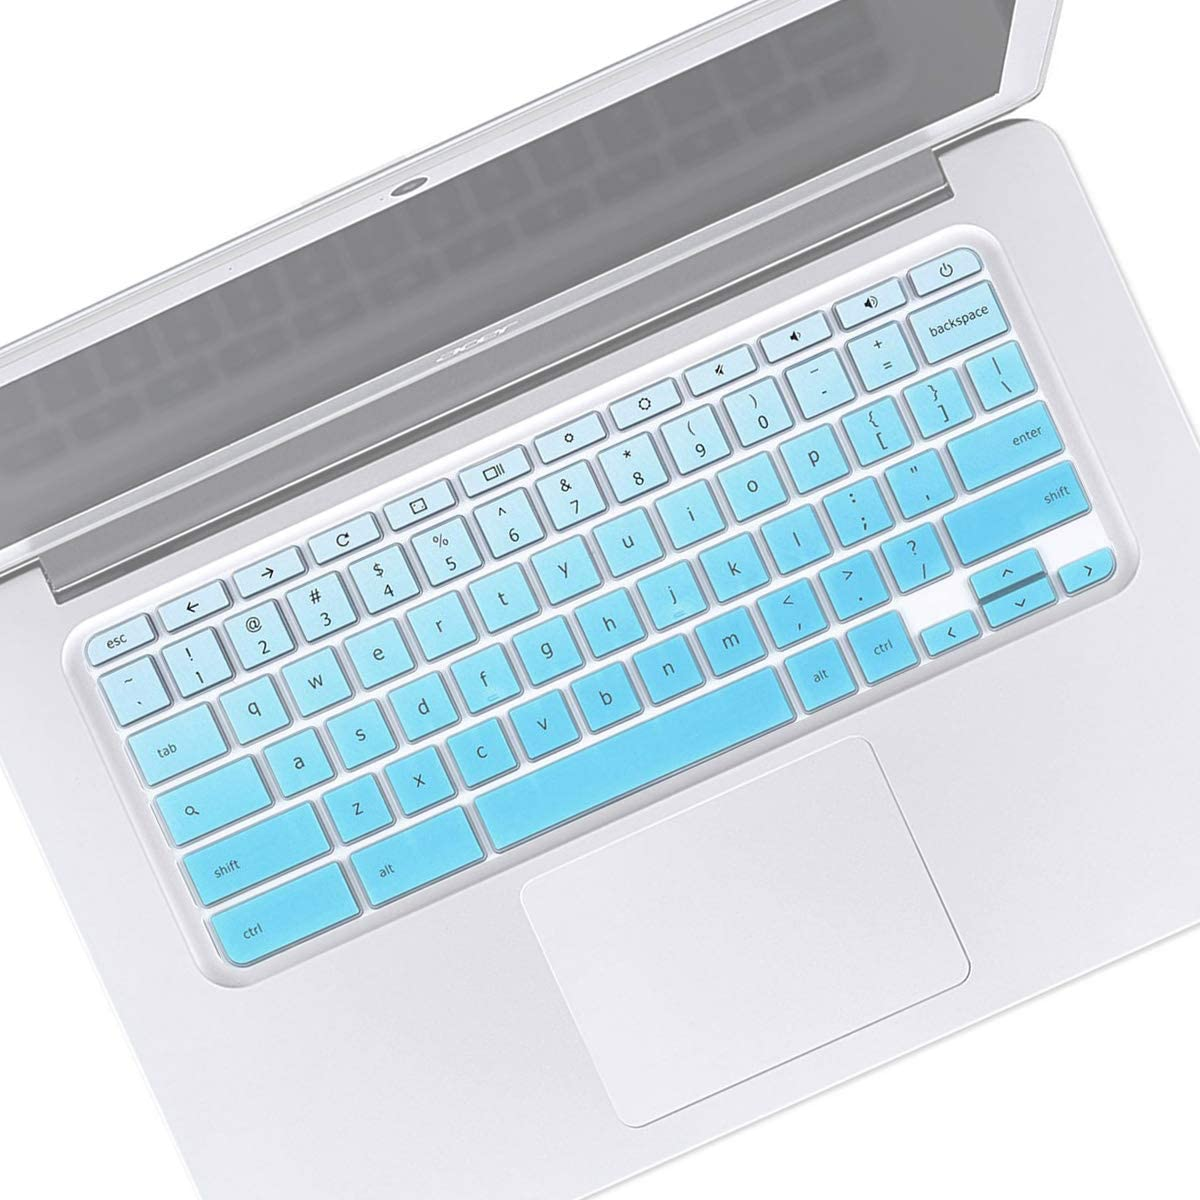 Keyboard Cover for Acer Chromebook Spin 15 15.6"